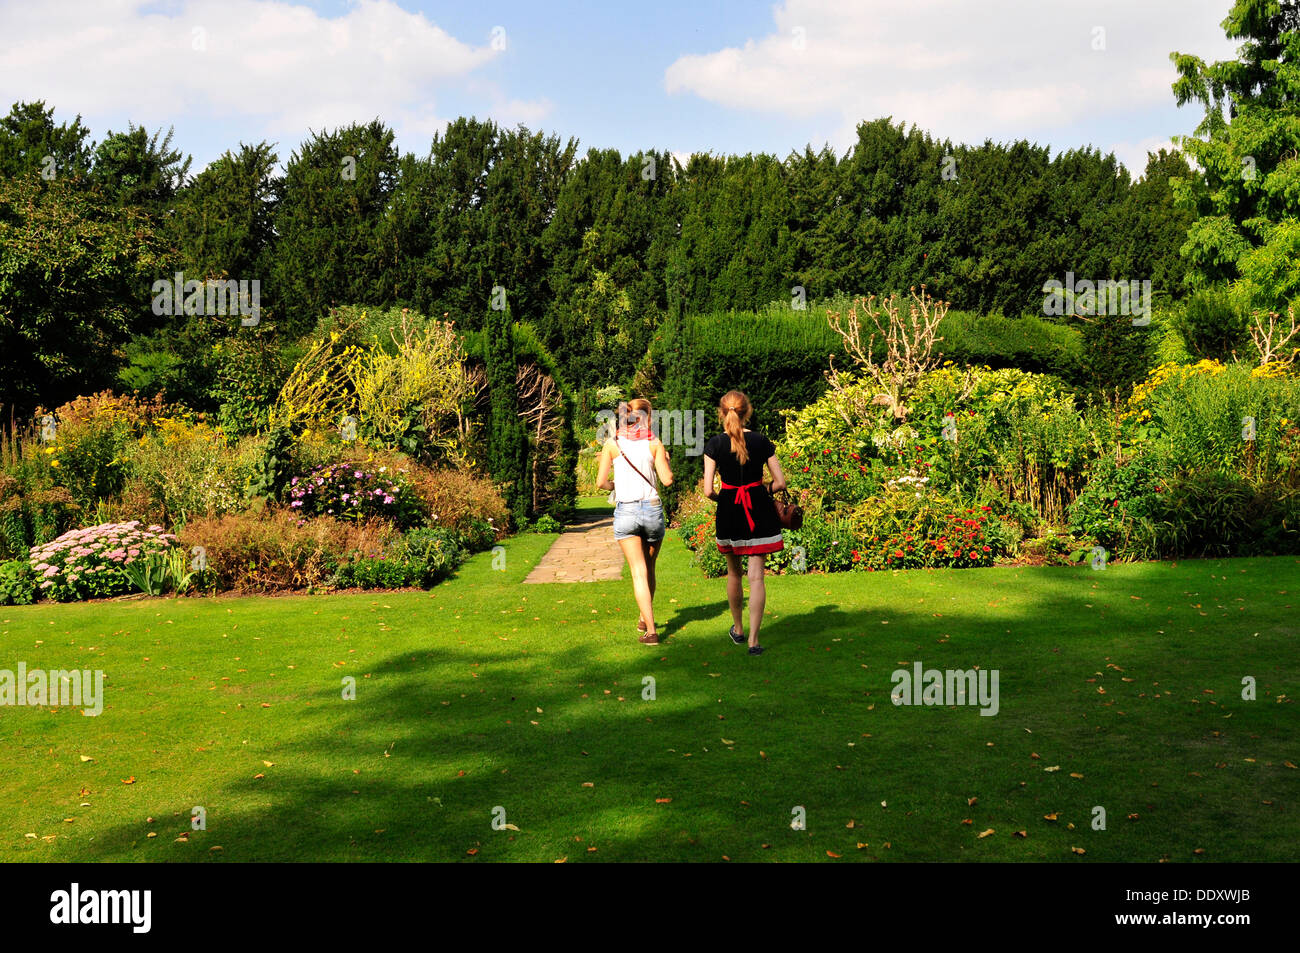 Two young women walking in Fellows Garden, Clare College, Cambridge, UK - Stock Image